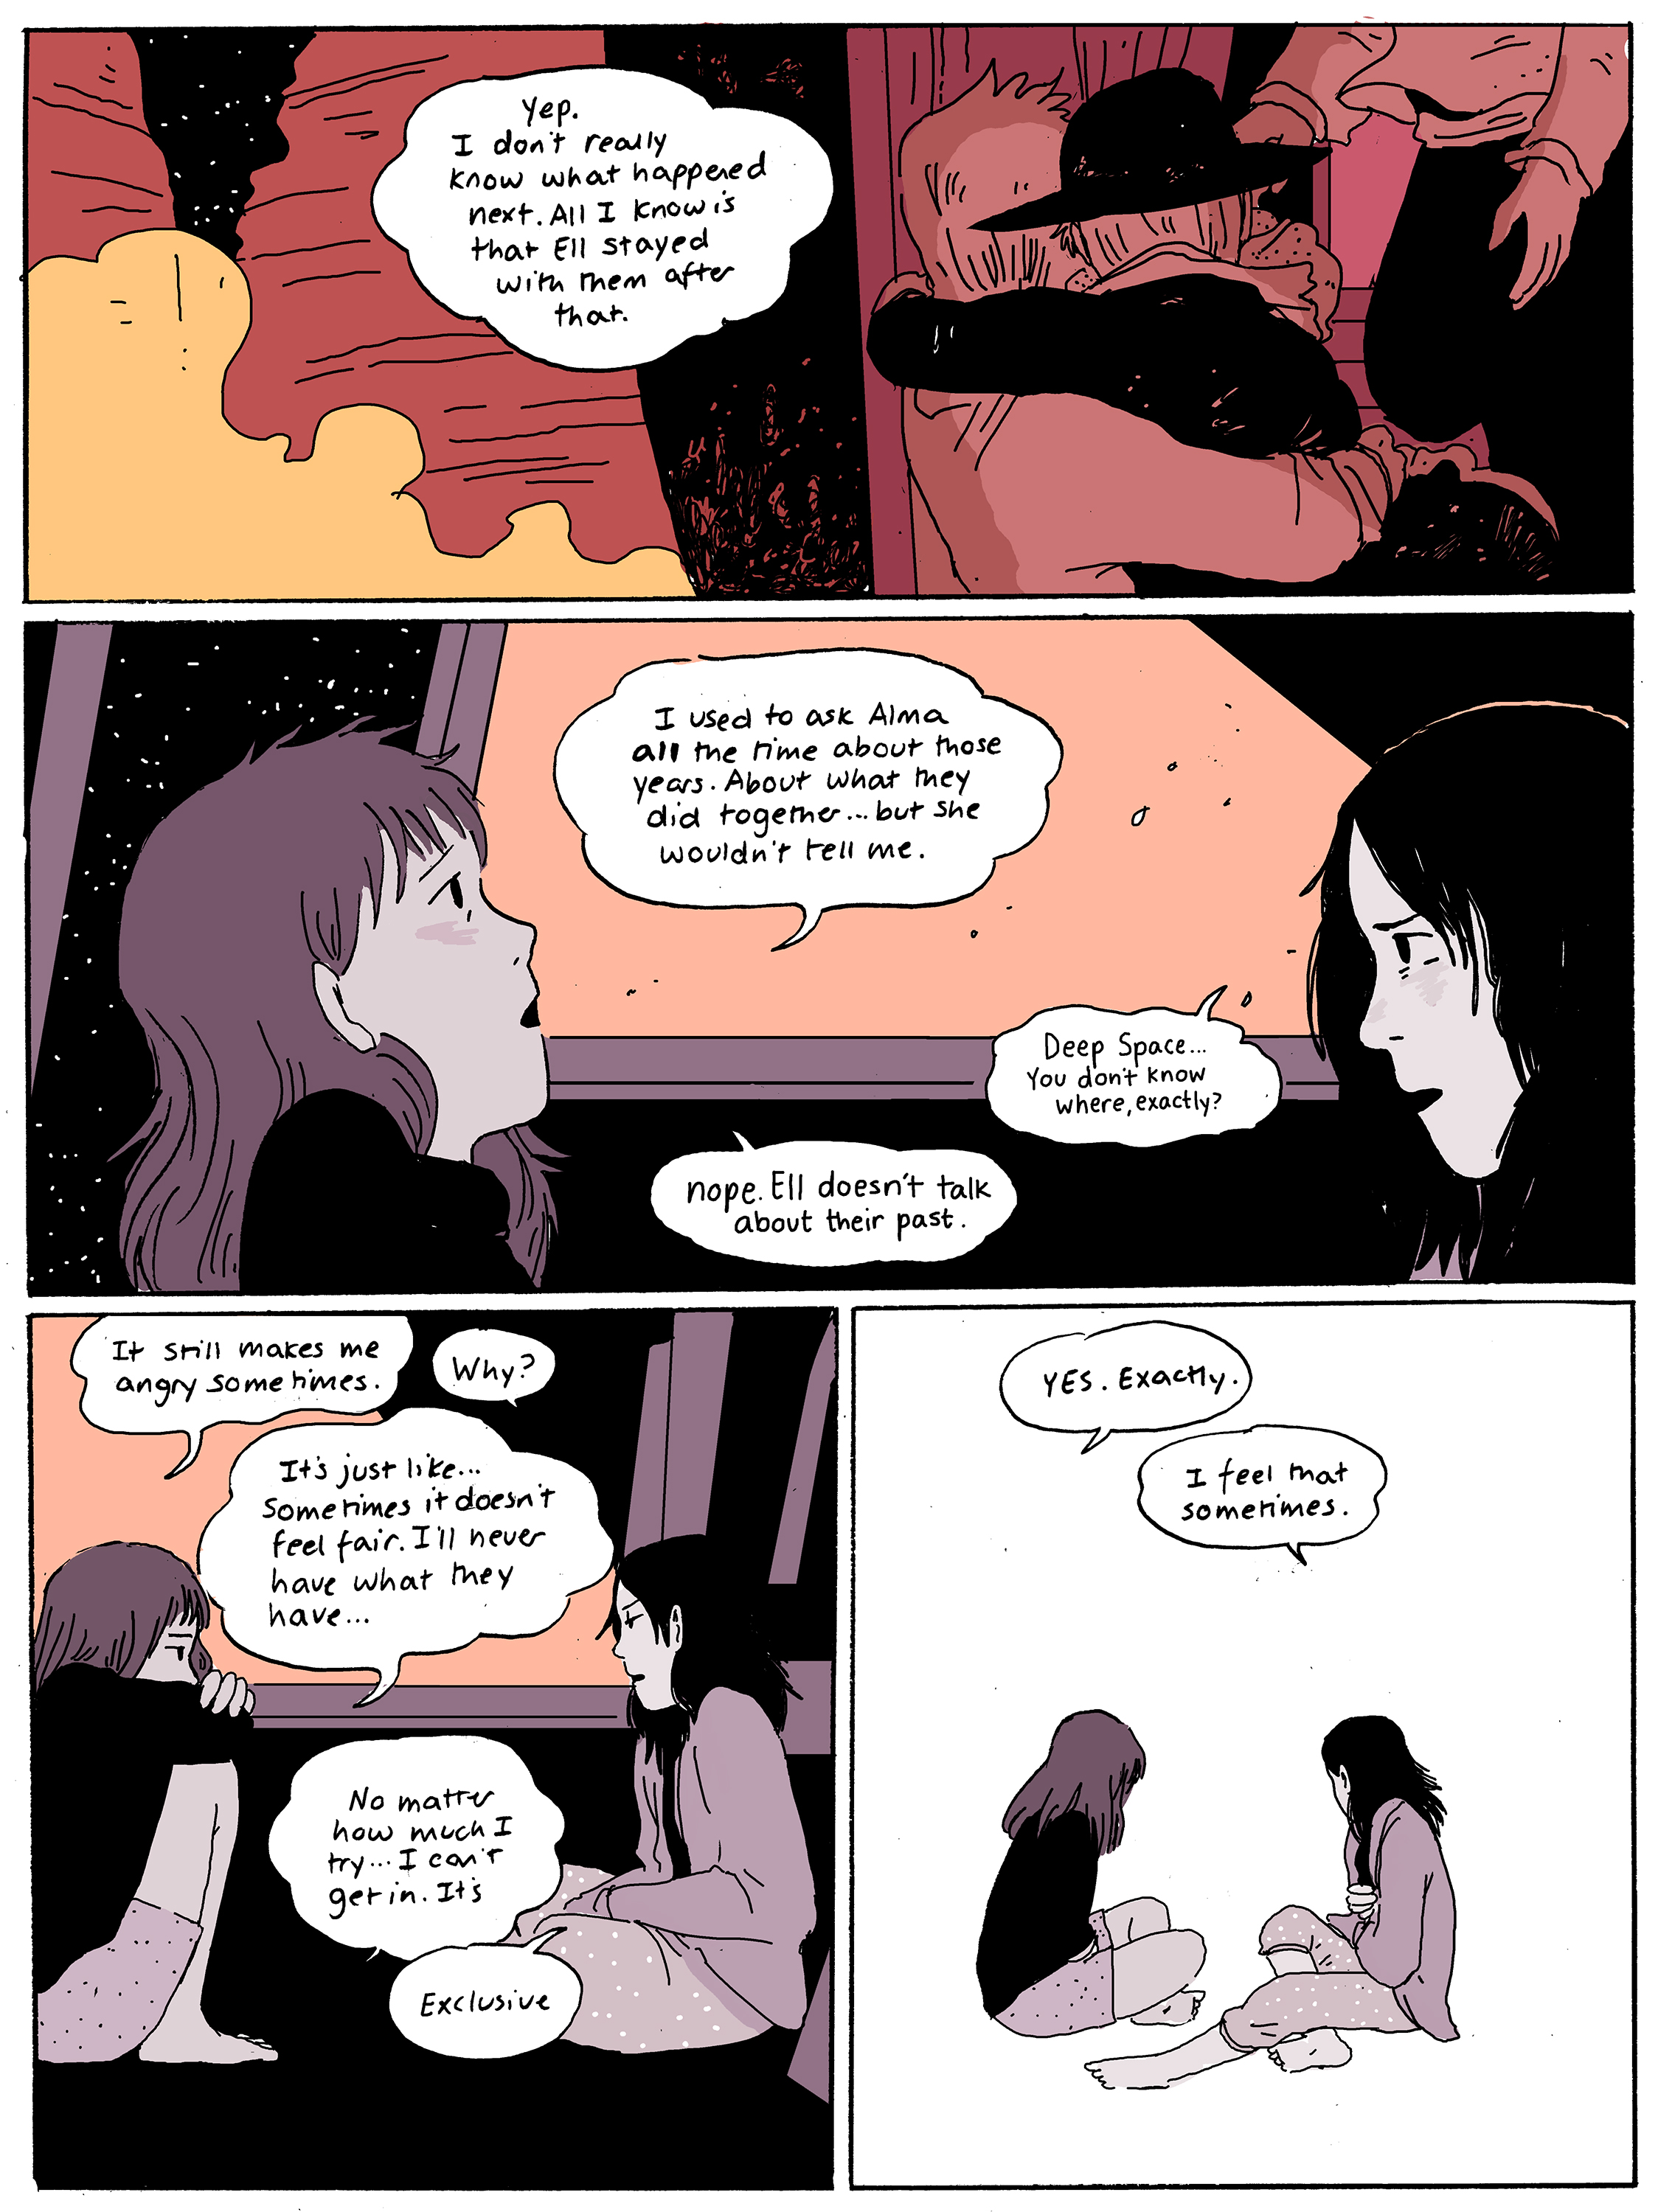 chapter09_page15.jpg